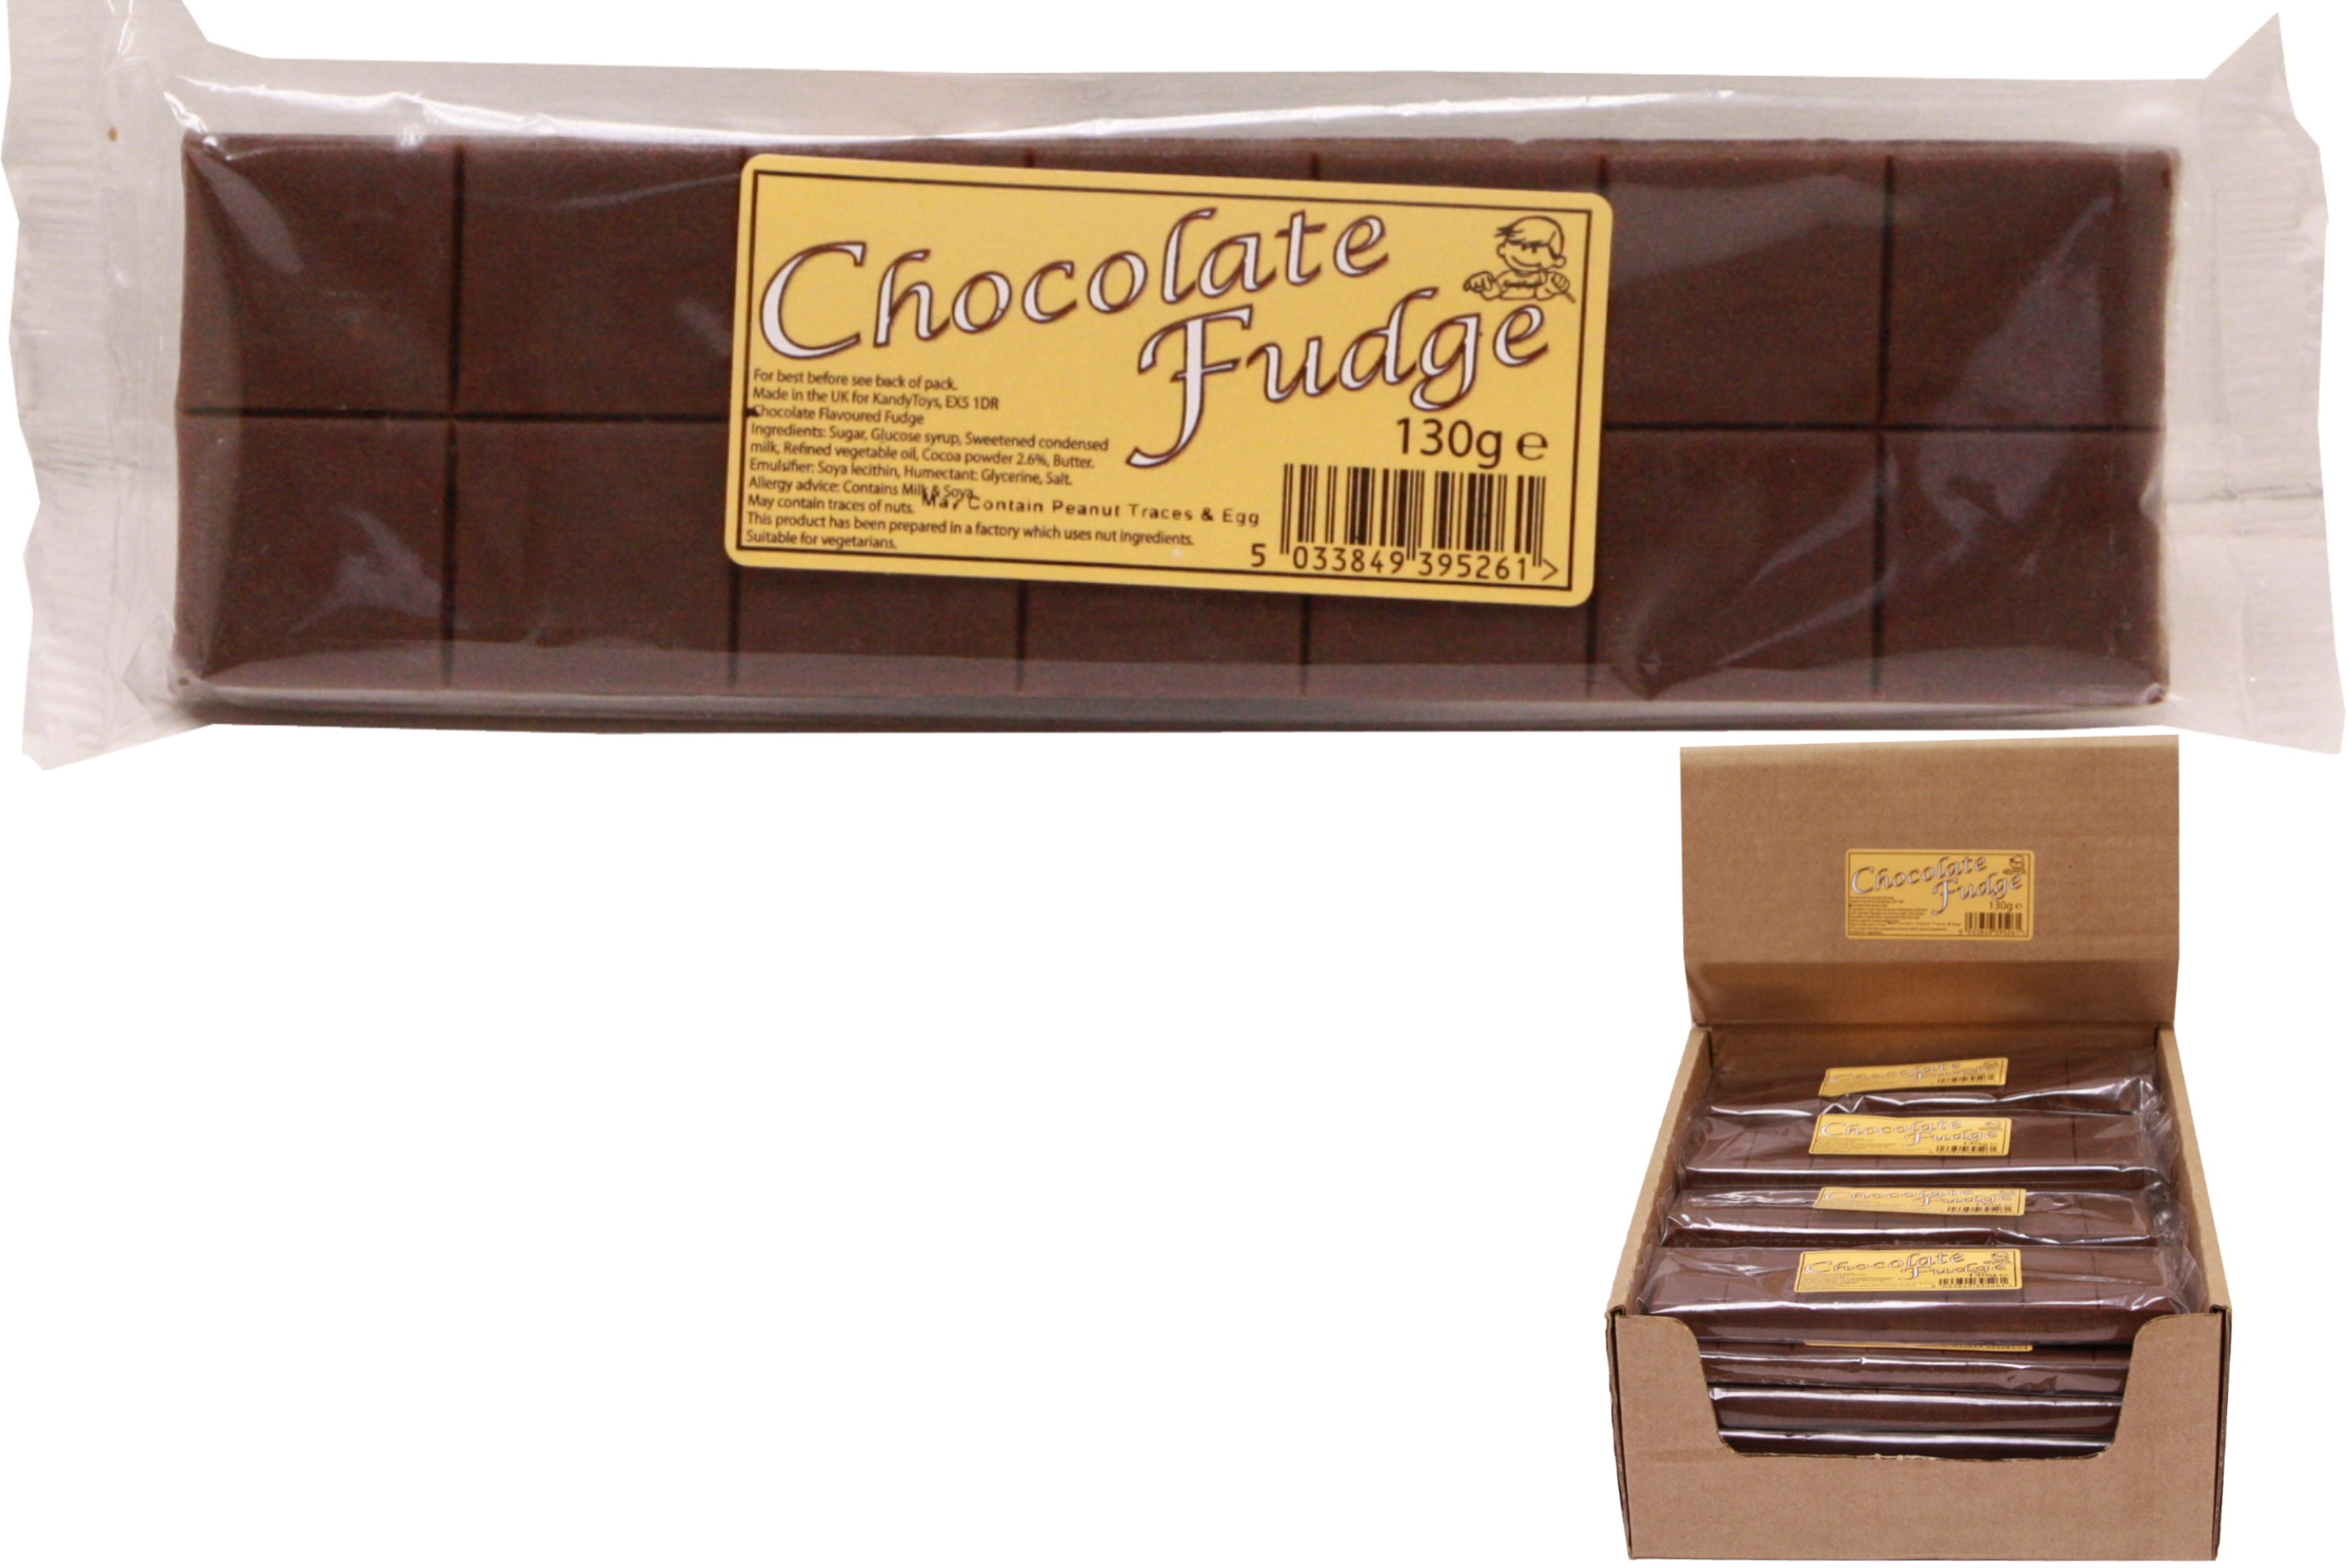 130g Chocolate Flavour Fudge Bar